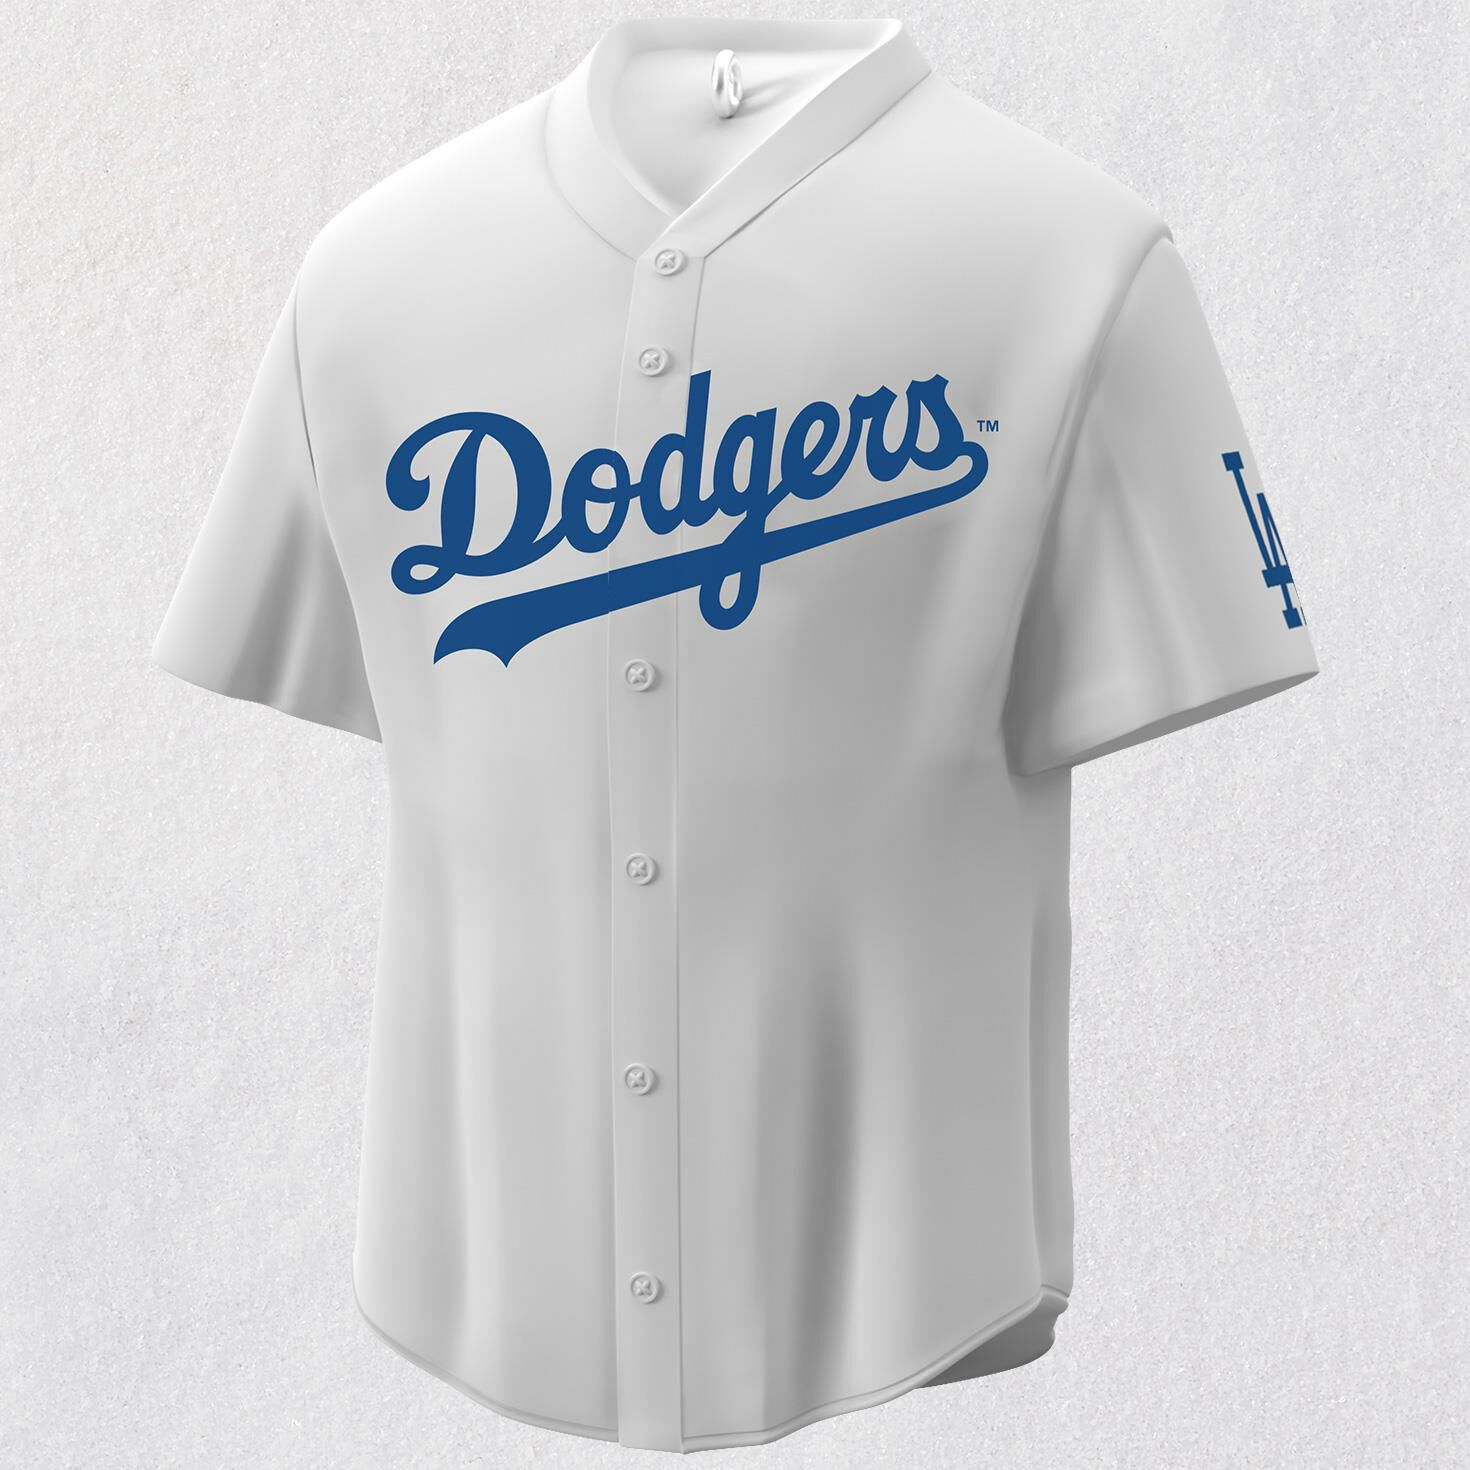 Dodgers fan appreciation day prizes for bridal shower